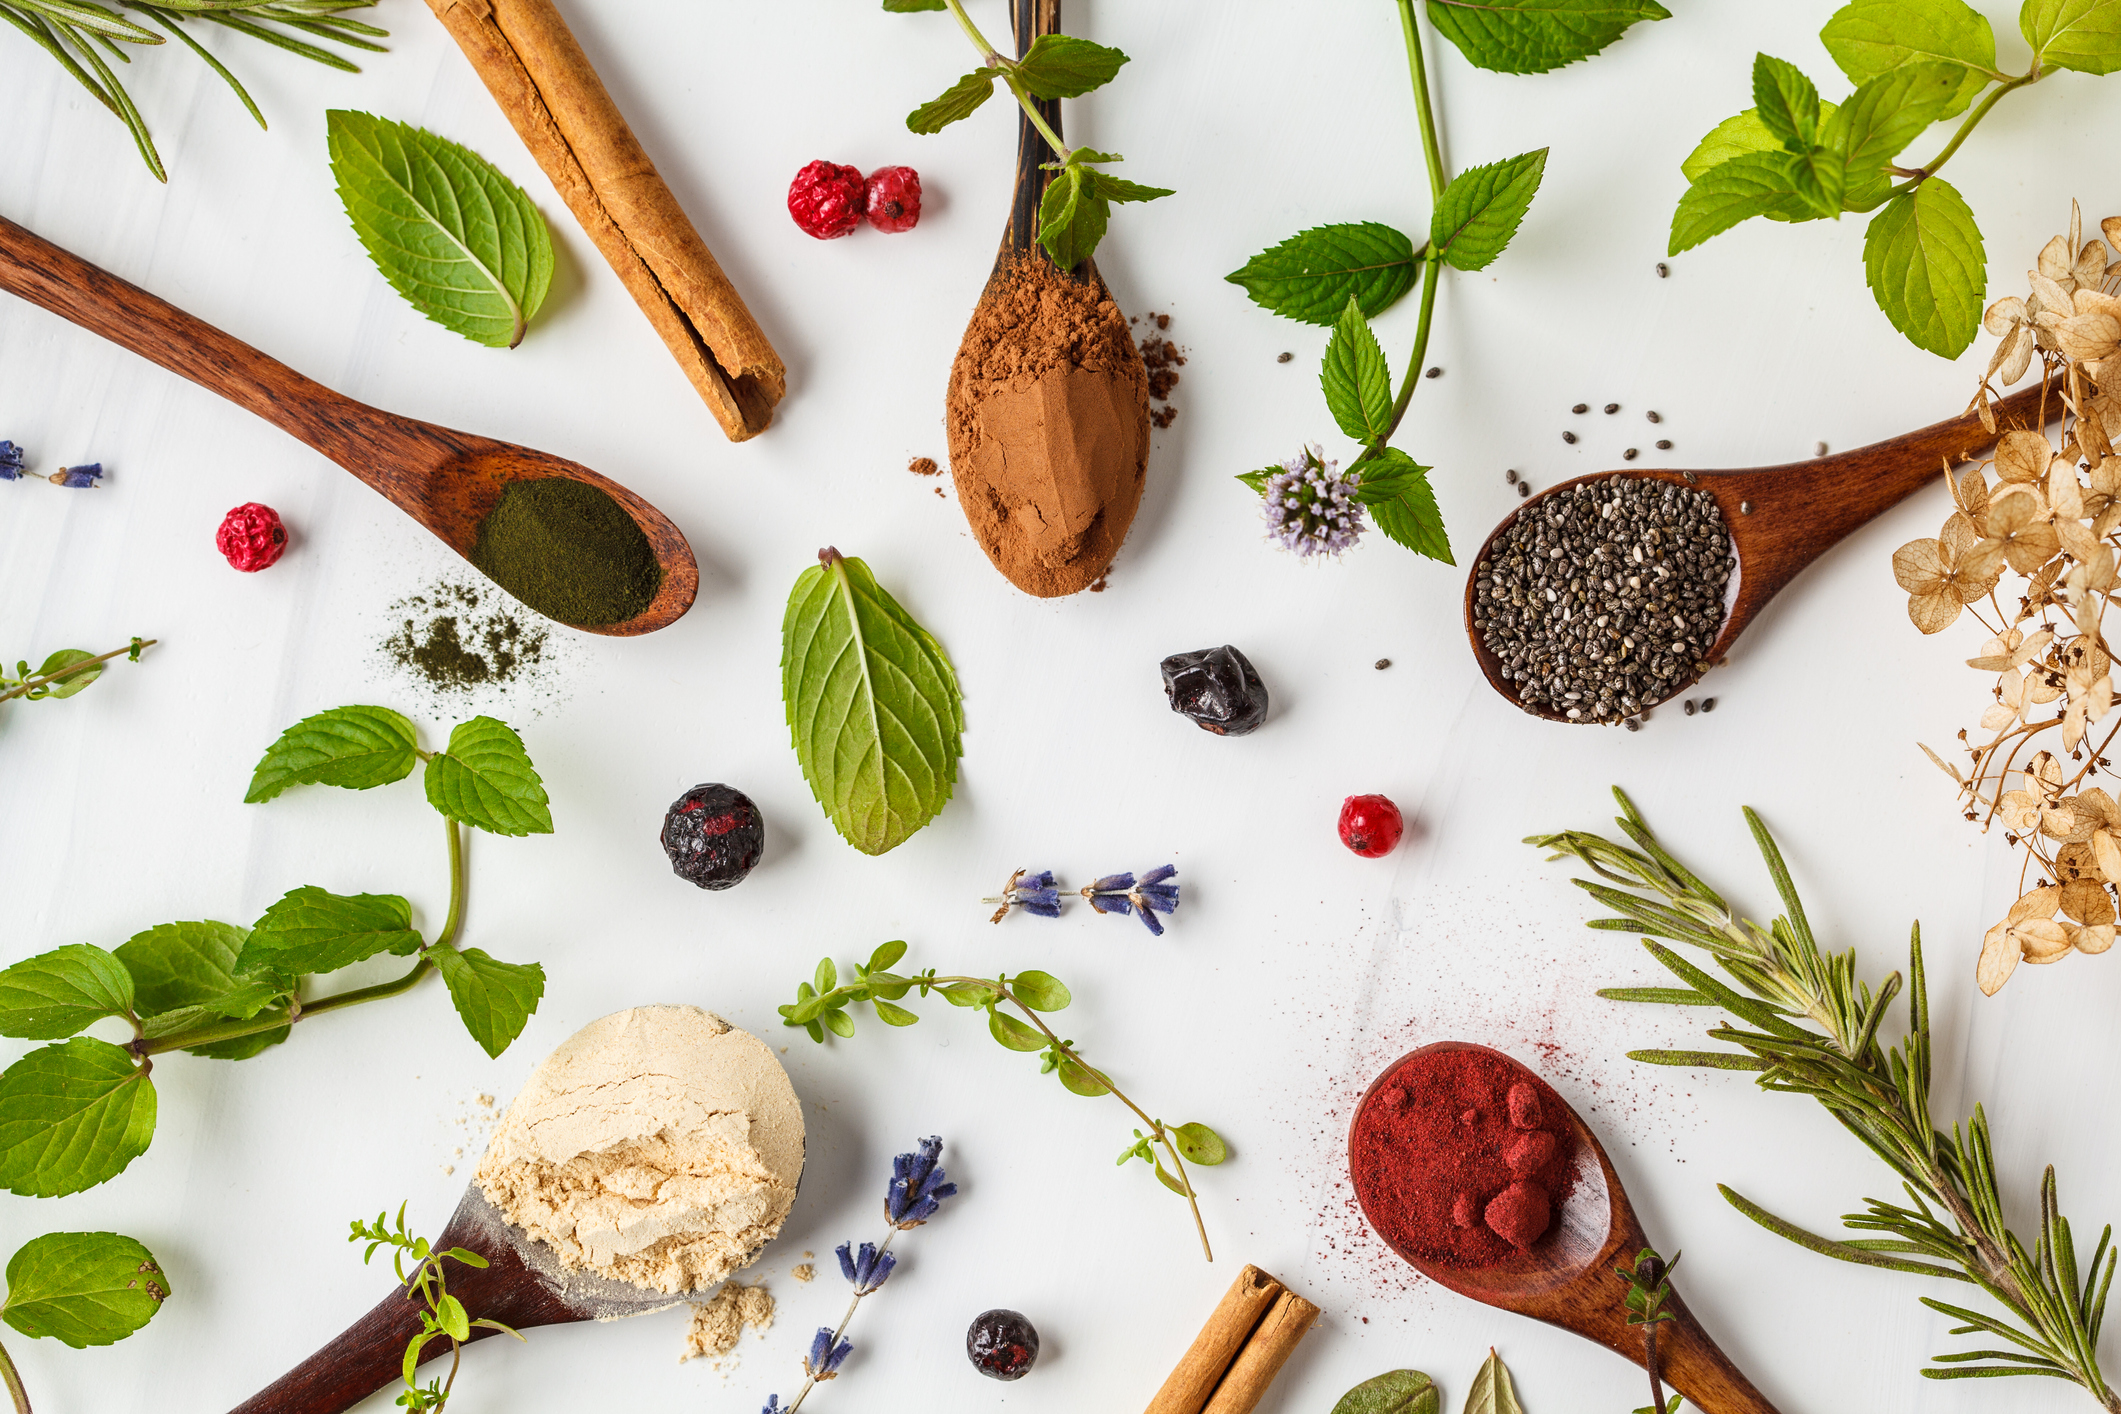 Superfoods for blood sugar, blood pressure, inflammation and more